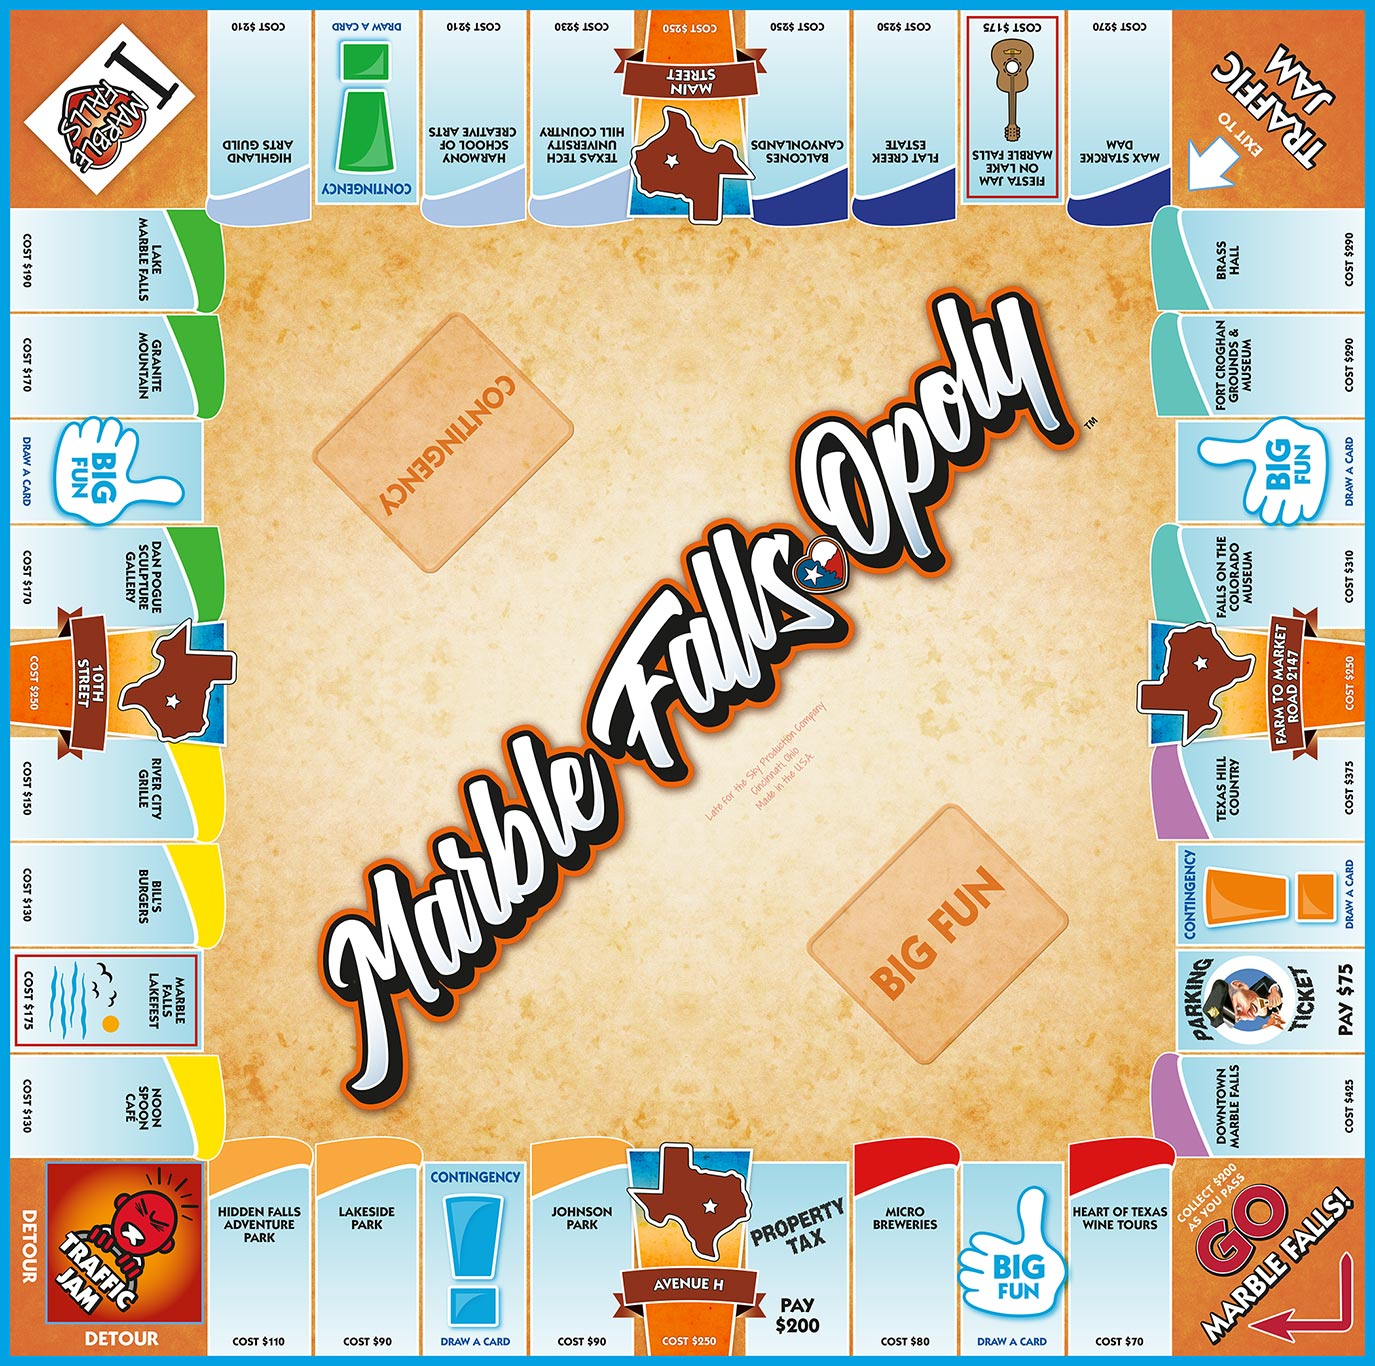 MARBLE FALLS-OPOLY Board Game